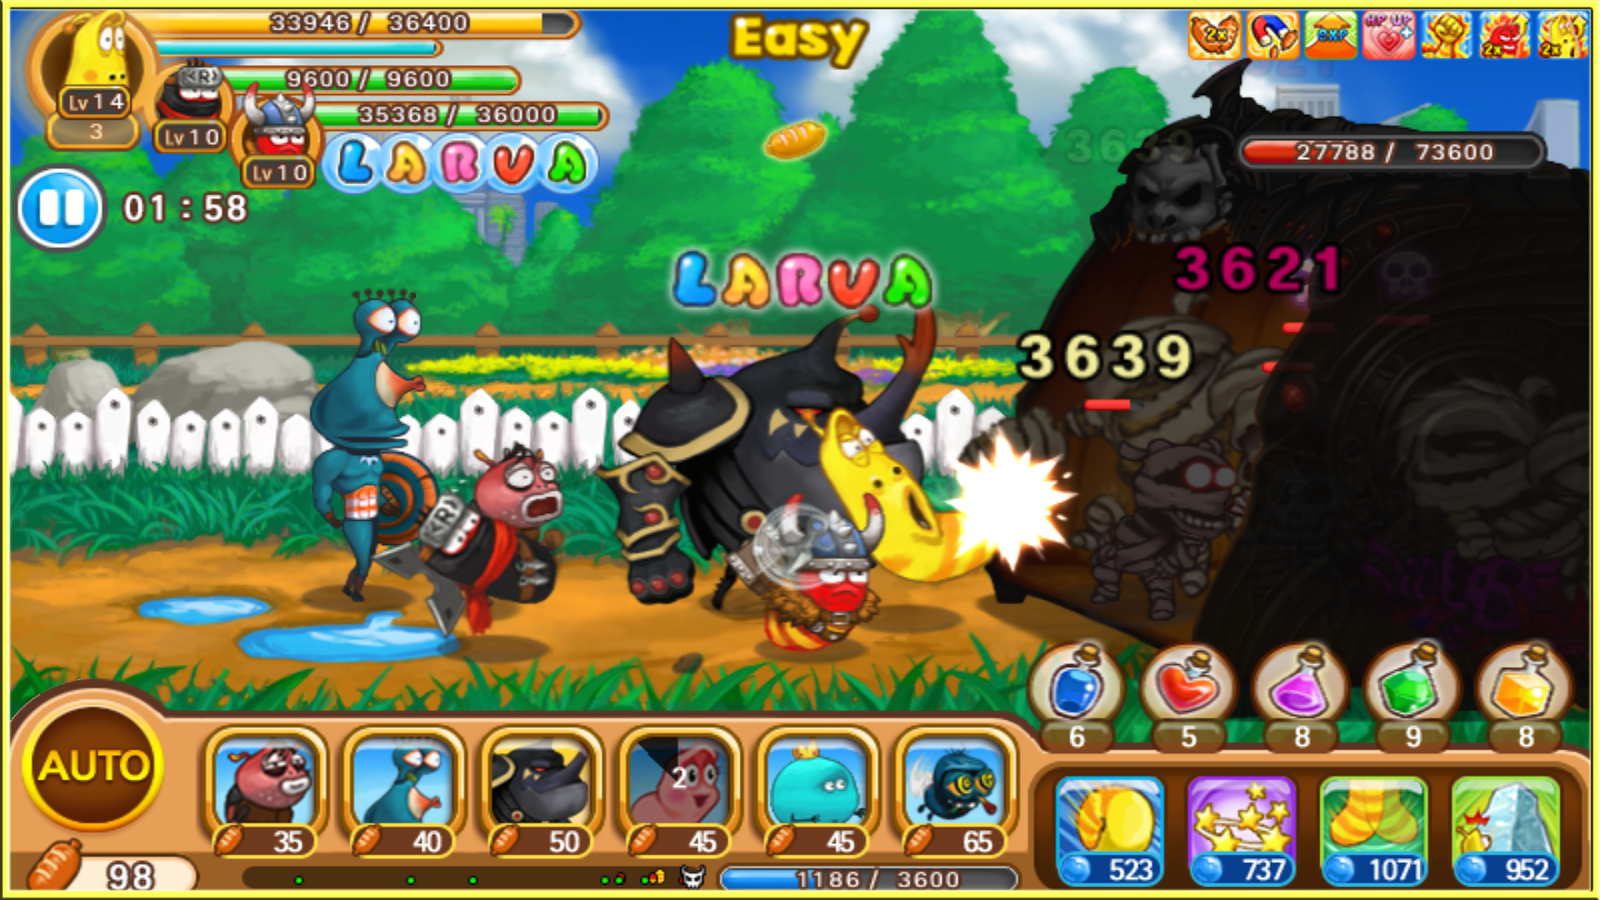 Larva Heroes : PVP Online Screenshot 14